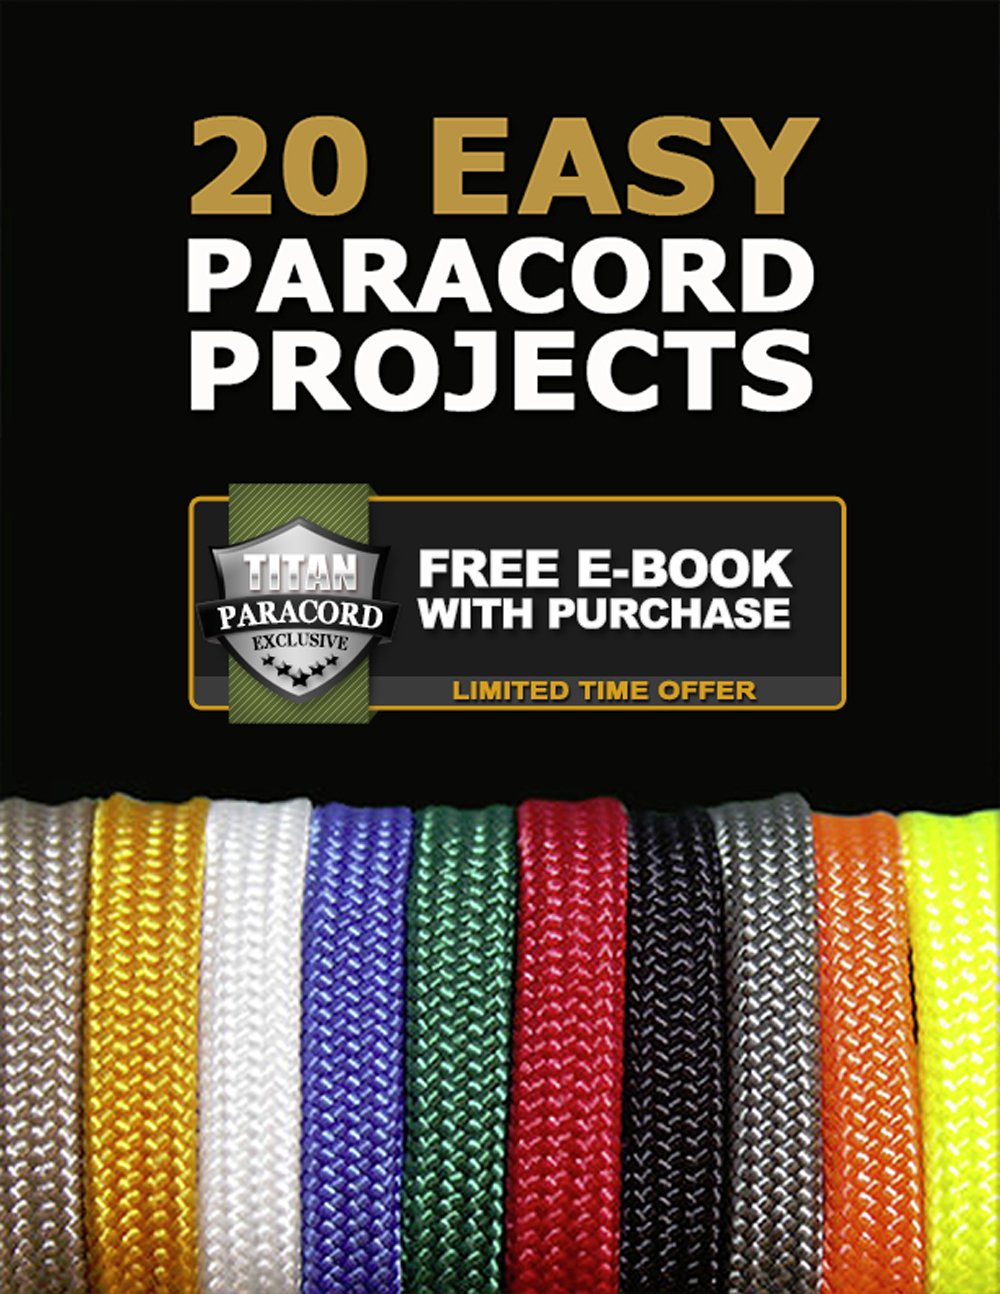 TITAN WarriorCord | PURPLE | 103 CONTINUOUS FEET | Exceeds Authentic MIL-C-5040, Type III 550 Paracord Standards. 7 Strand, 5/32'' (4mm) Diameter, Military Parachute Cord. by Titan Paracord (Image #9)